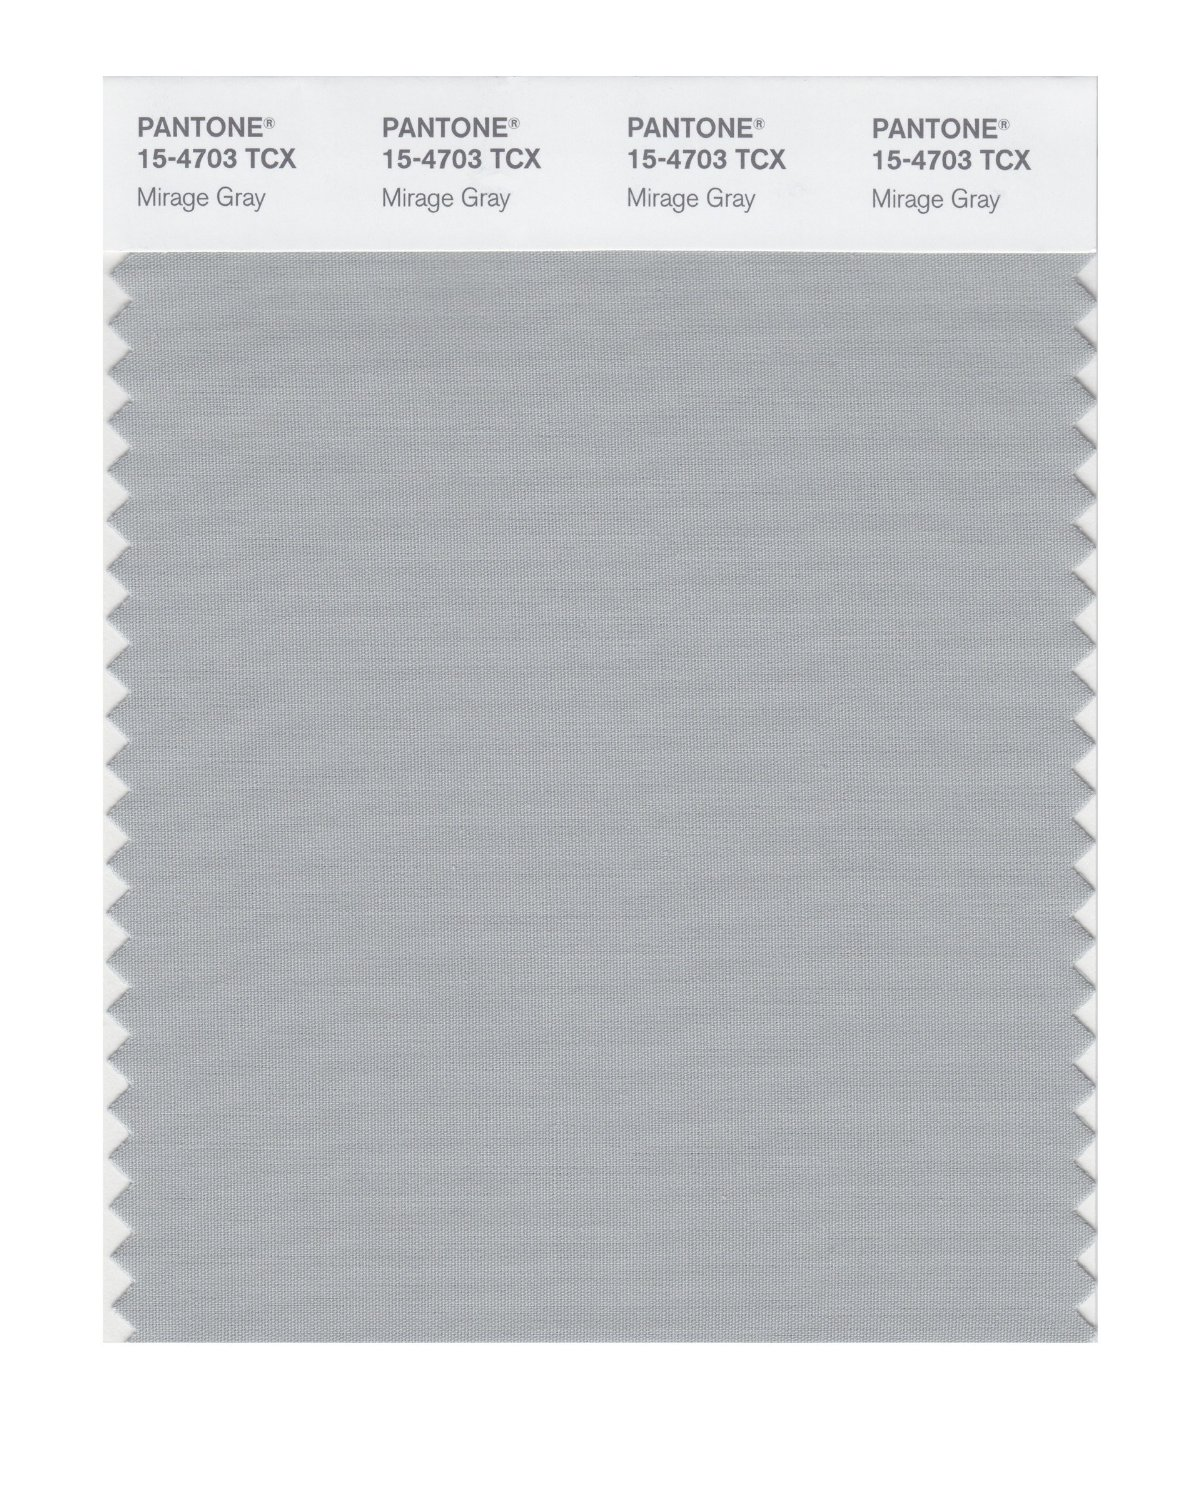 Pantone Smart Swatch 15-4703 Mirage Gray